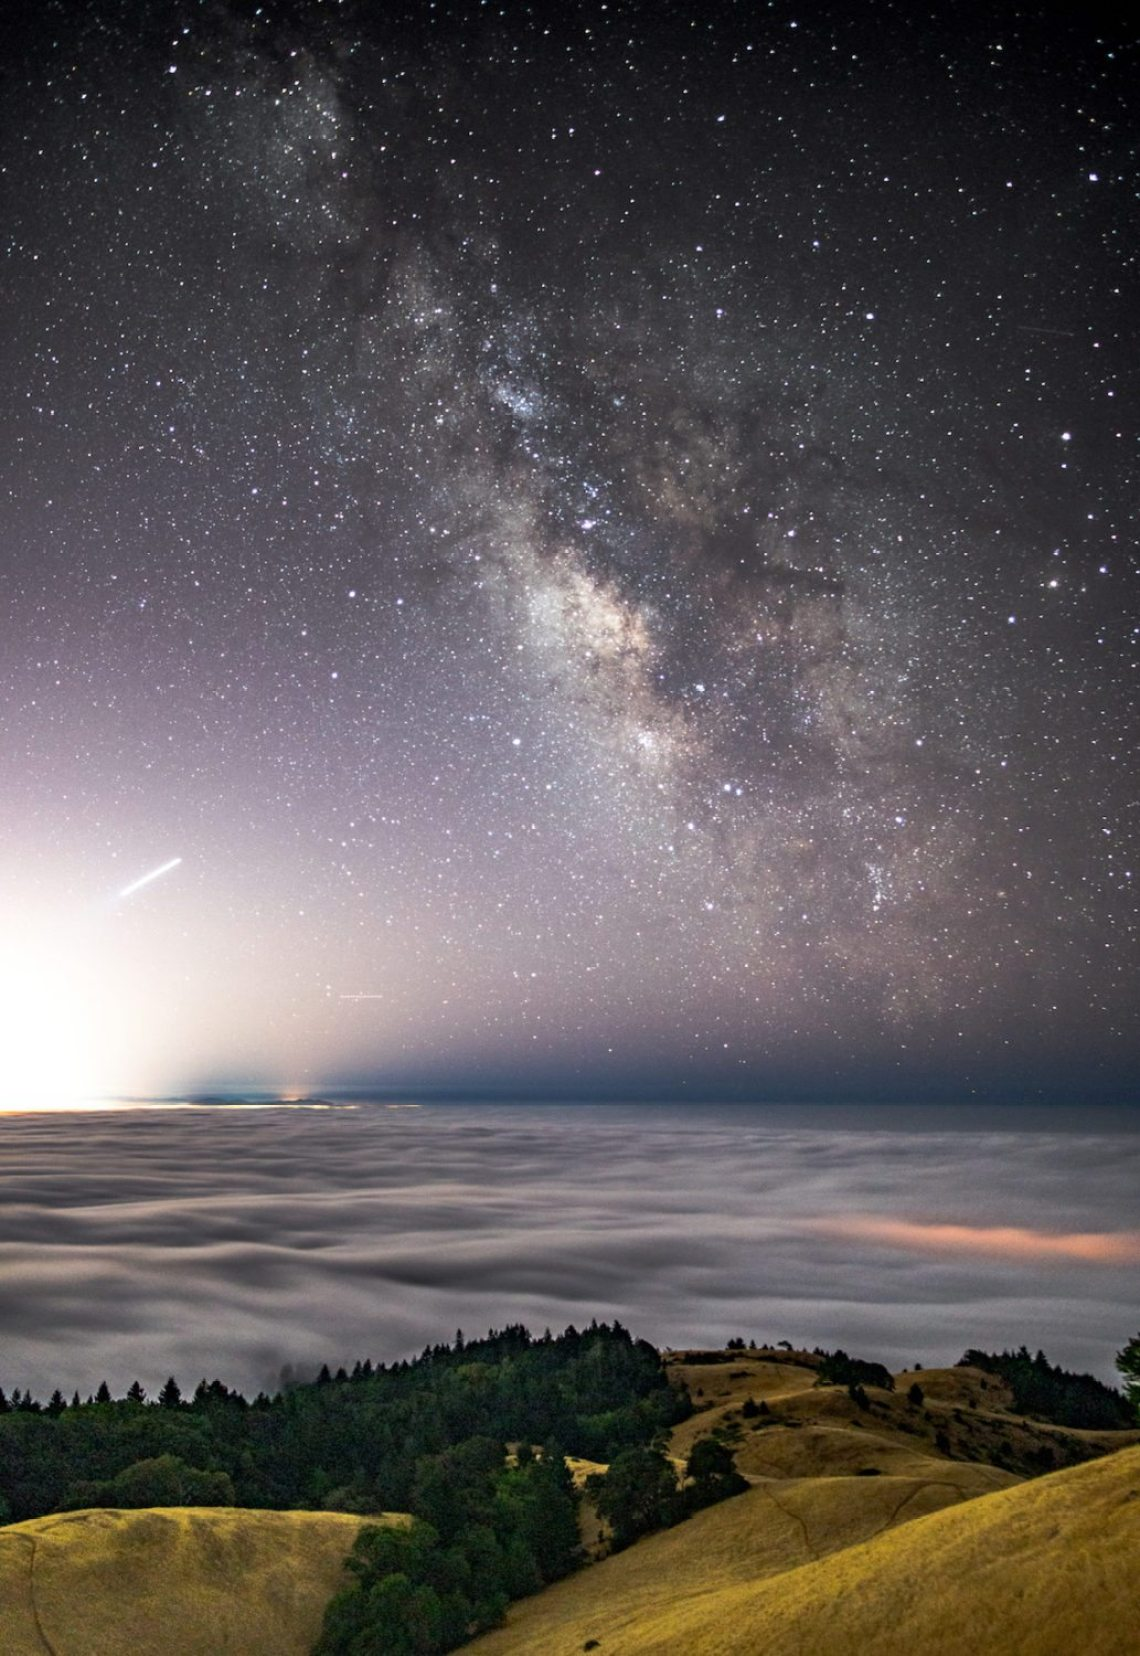 """My favorite pic. Taken last summer up on Mt. Tam over the fog."" Photo: Jake Landon, @jakelandon. #SFGuide Featured Photographer."